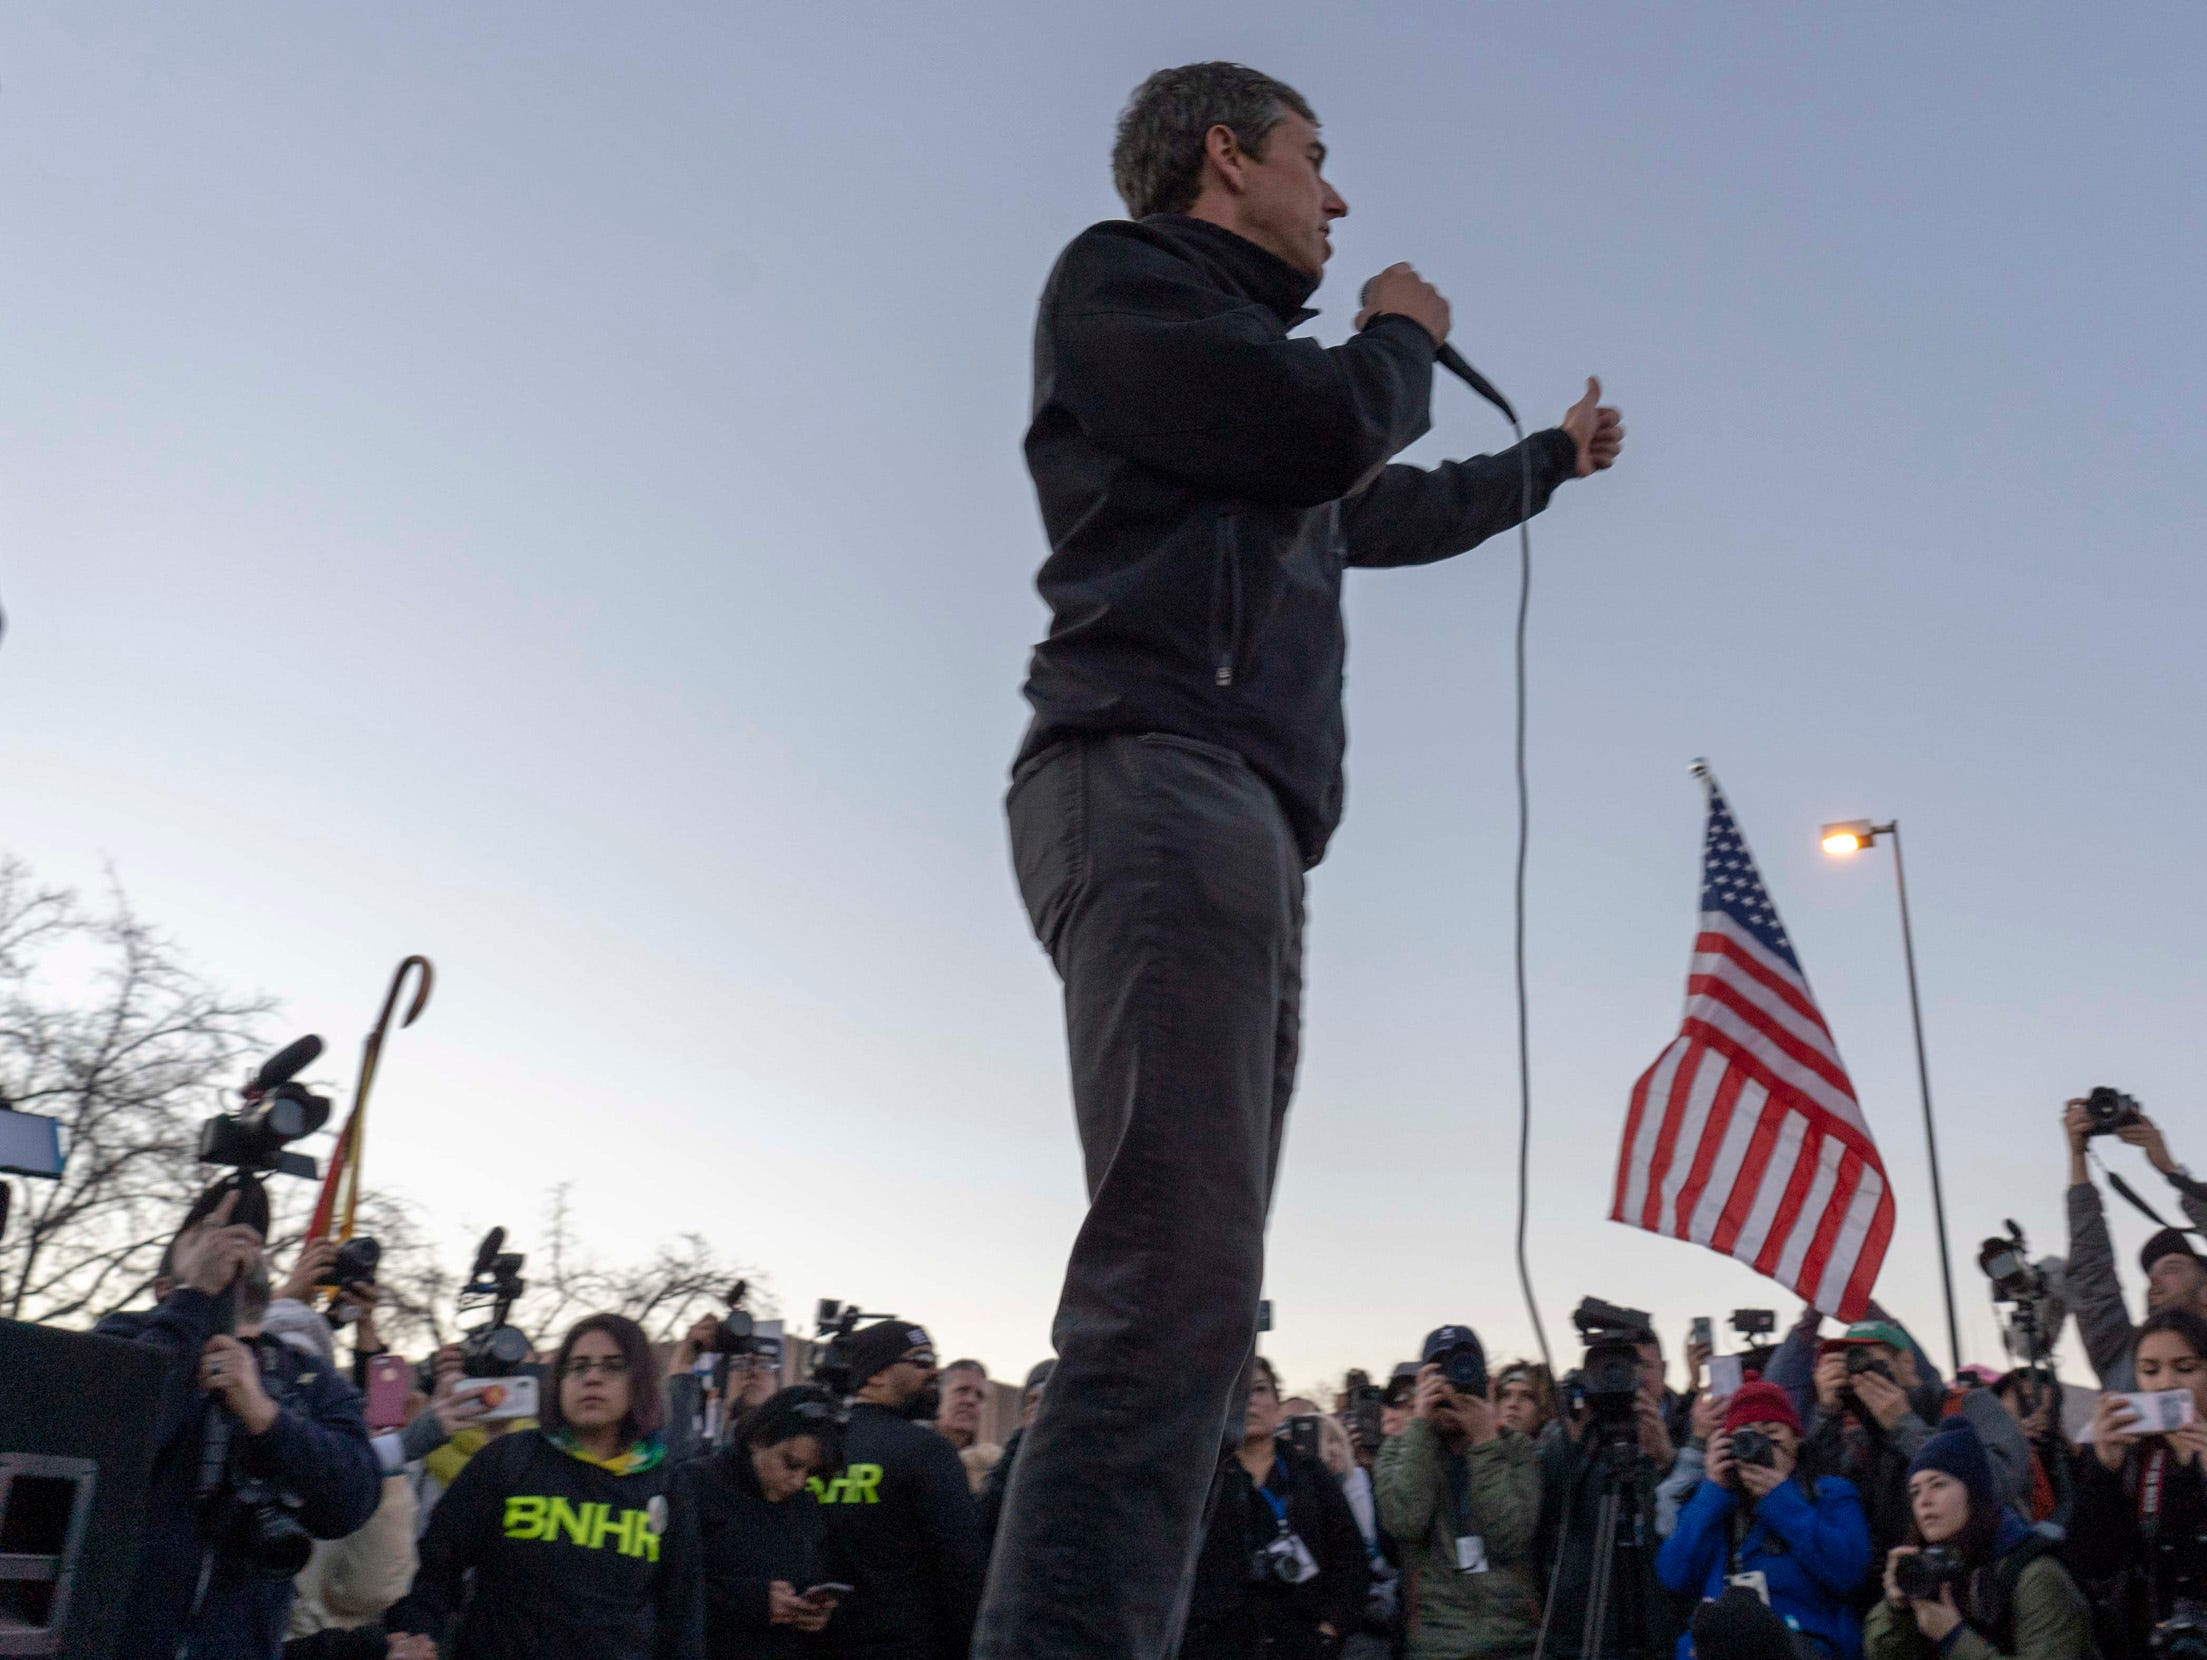 2/11/19 5:52:34 PM -- El Paso, TX, U.S.A  -- A counter-rally led by former U.S. Senate candidate Beto O'Rourke joined the March for Truth with hundreds of people along with Border Network for Human Rights, Women's March, to protest against President Trump campaign rally near El Paso County Coliseum on Feb. 11, 2019. Nick Oza